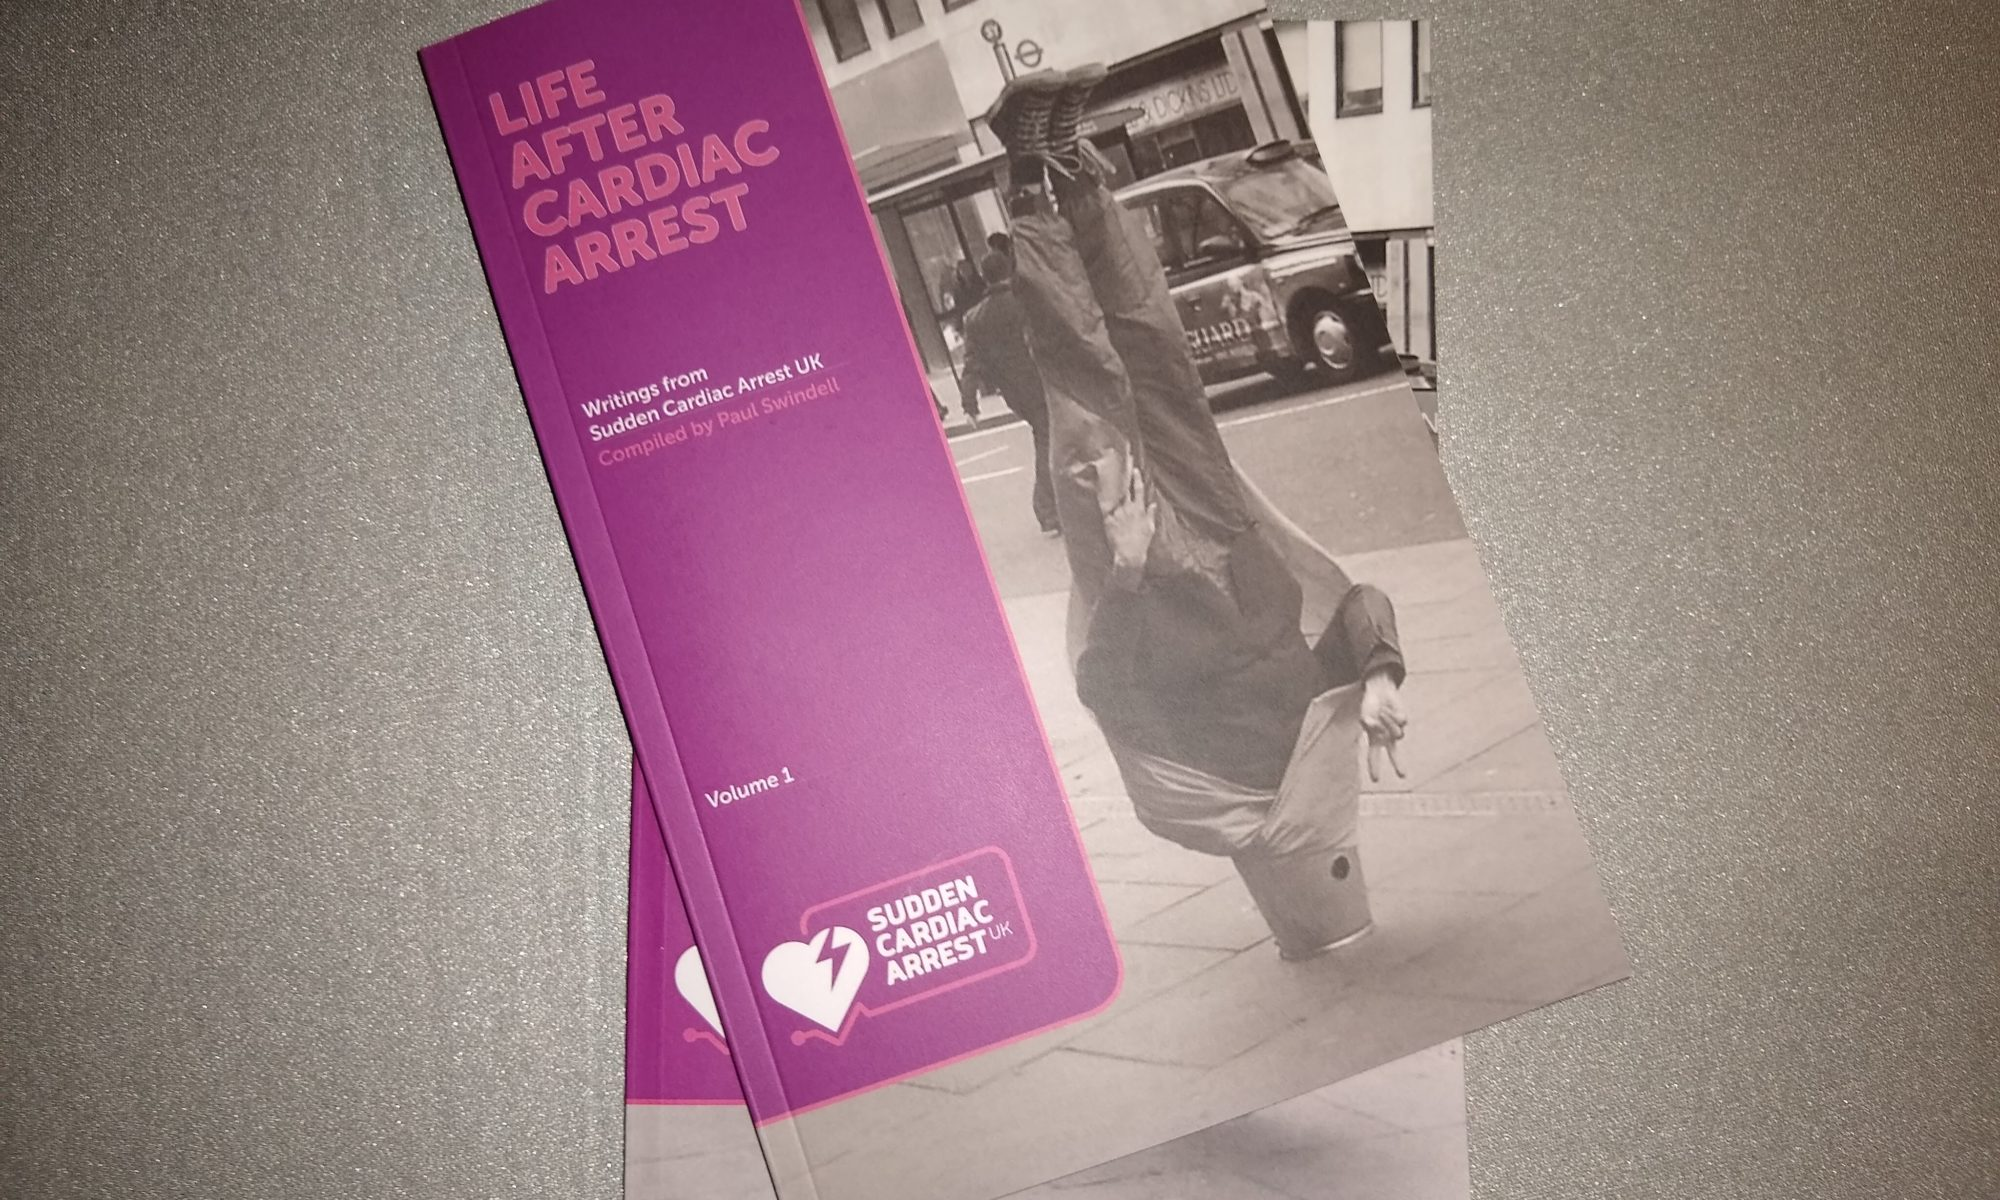 Life after cardiac arrest paperback published - Sudden Cardiac ...